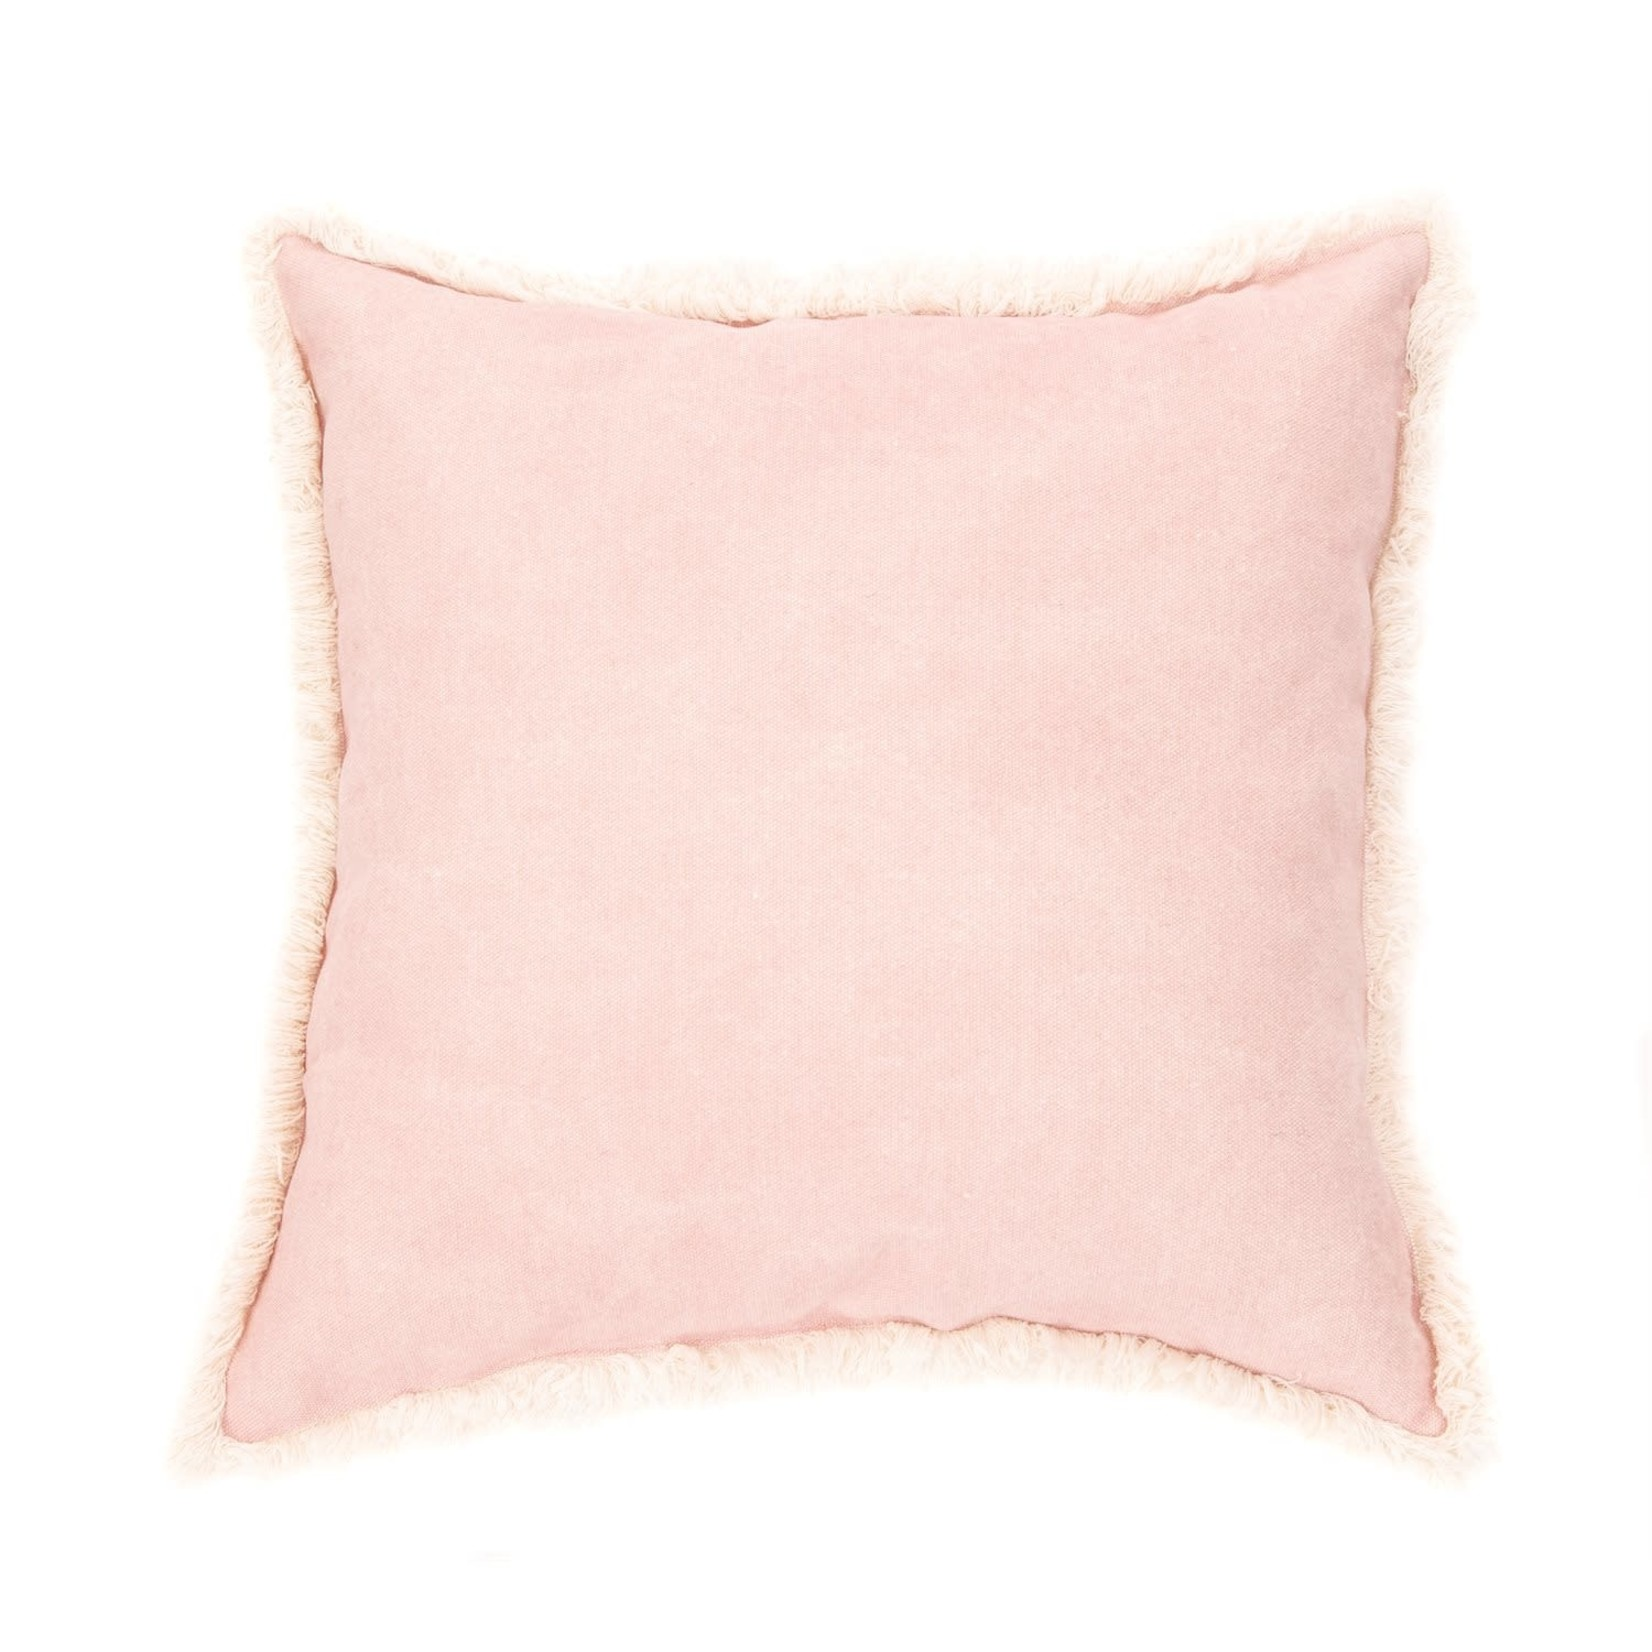 Cotton Candy Pink Cushion